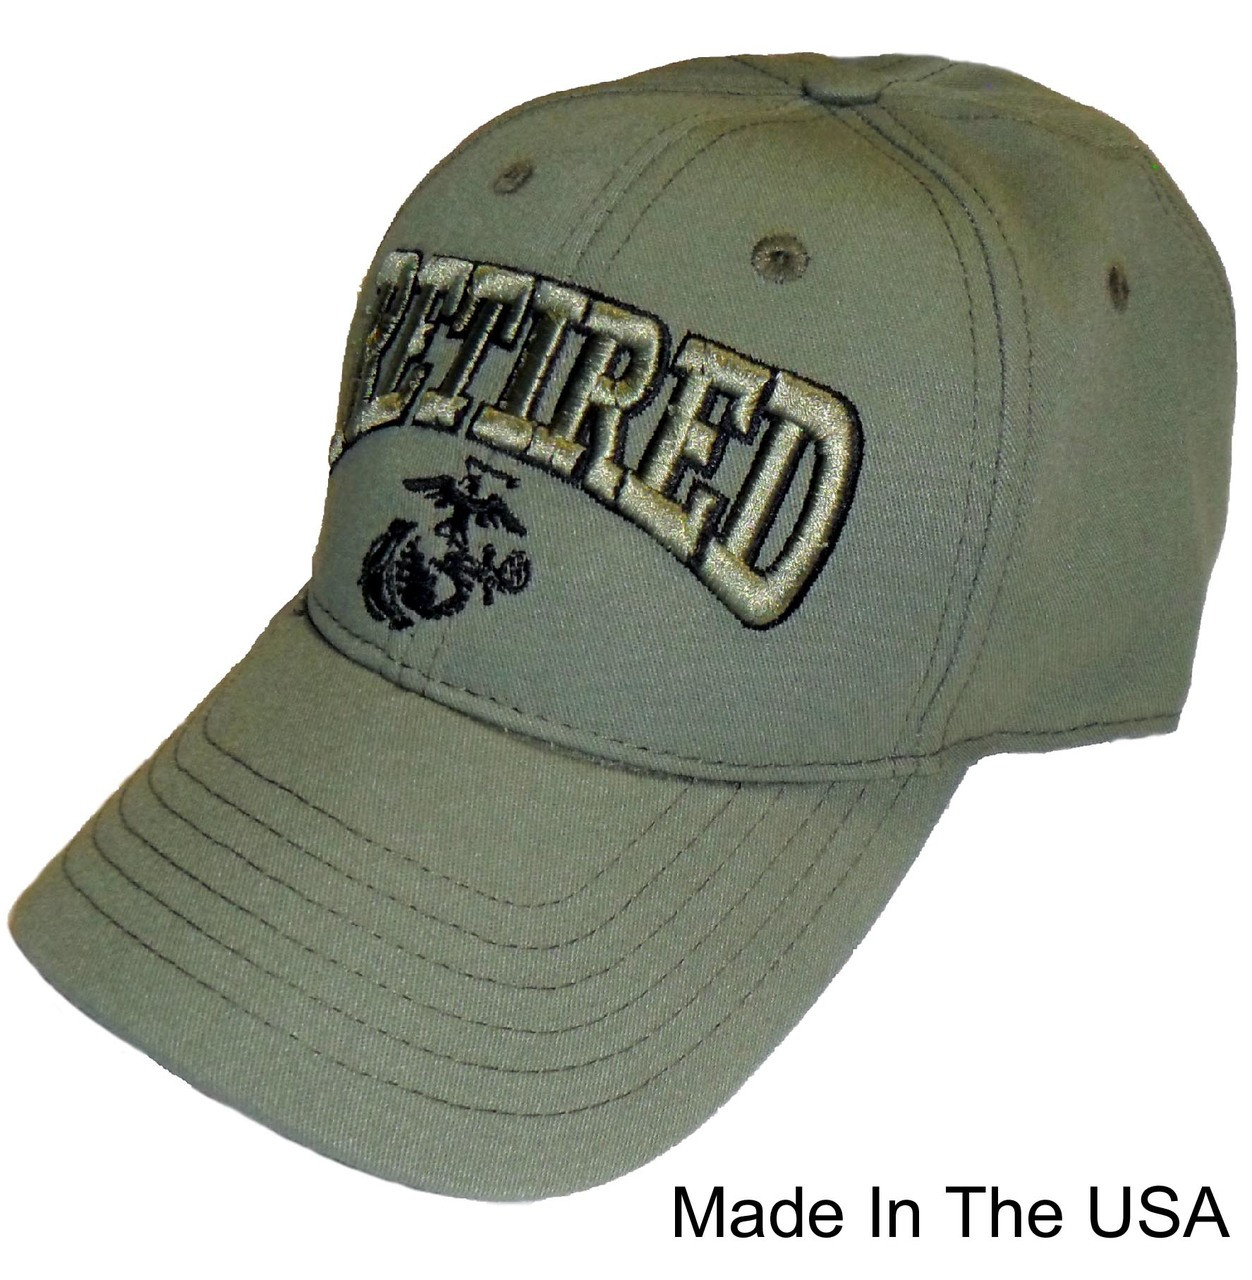 ff88c93468 US MARINE RETIRED - U.S.M.C. USA MADE Officially Licensed Baseball Cap Hat